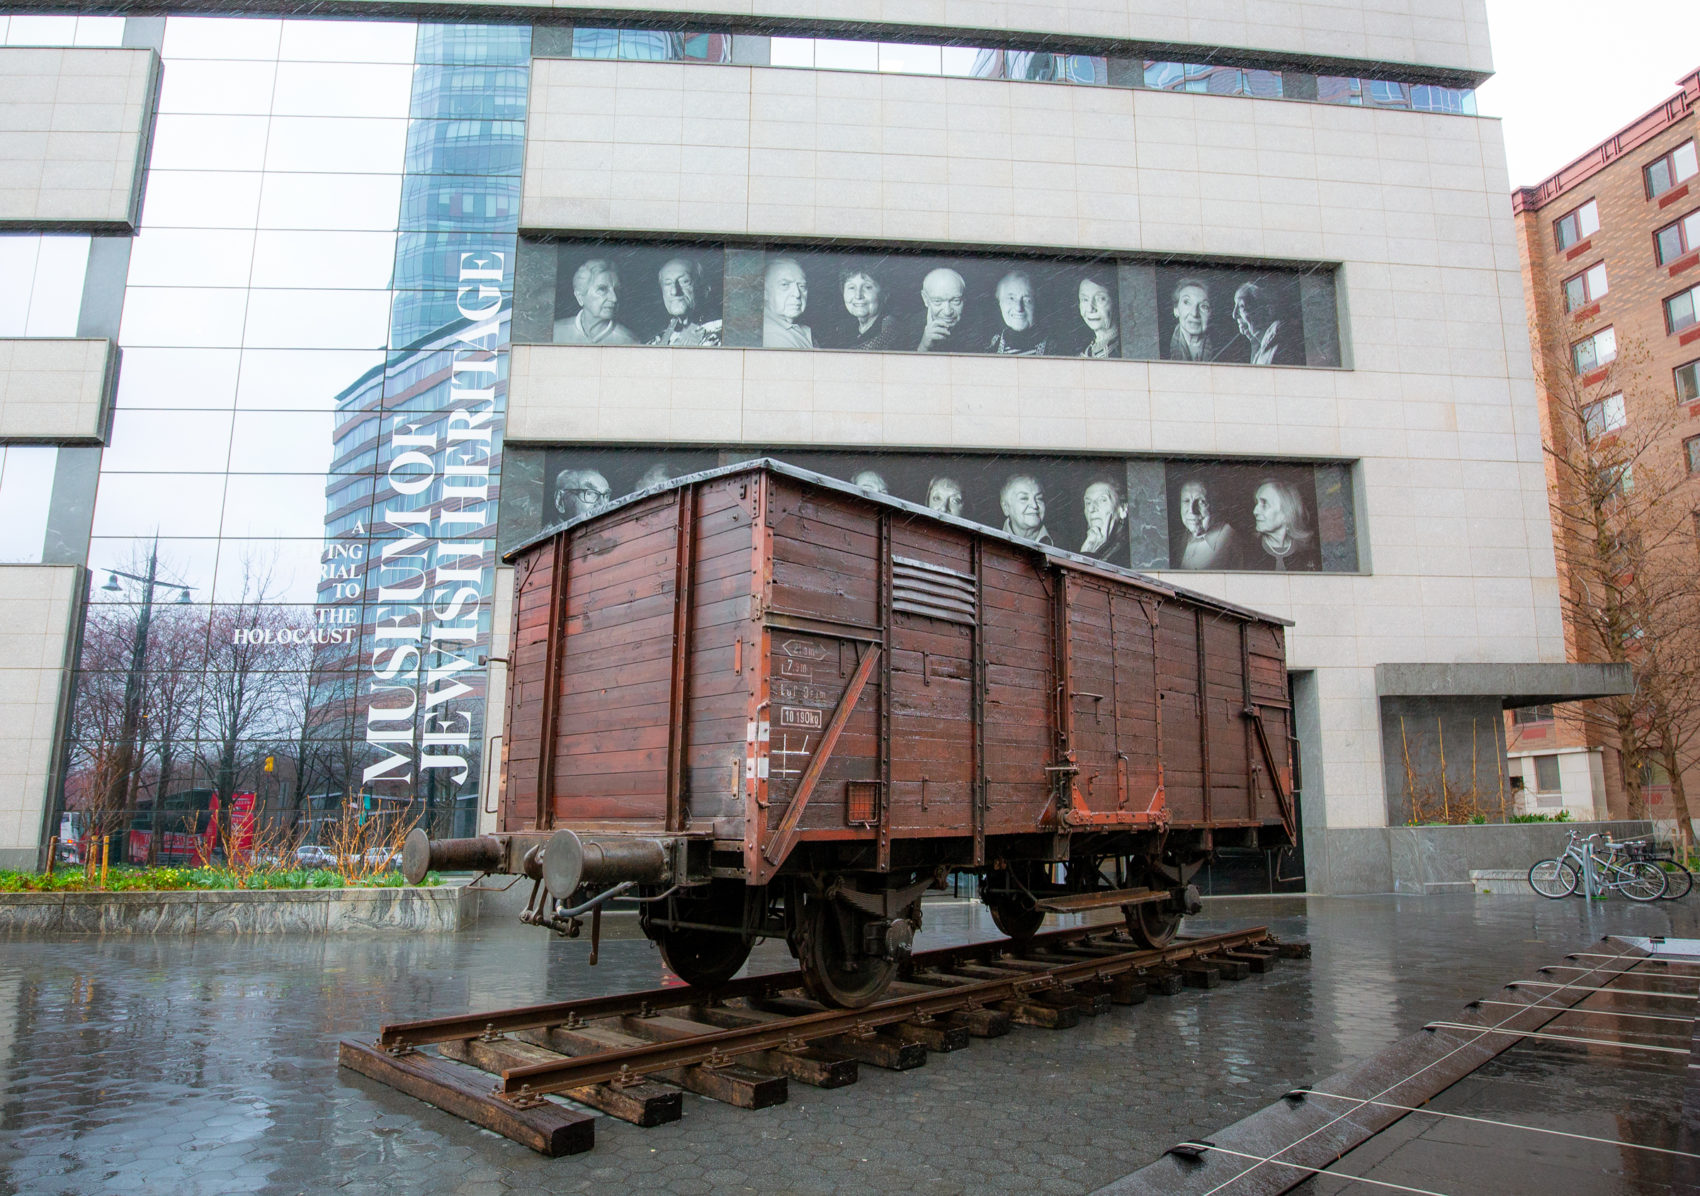 A German-made World War II-era freight car outside the Museum of Jewish Heritage. Approximately 80 people were crammed in one of these cars when they were deported to Auschwitz. (Courtesy Museum of Jewish Heritage/John Halpern)